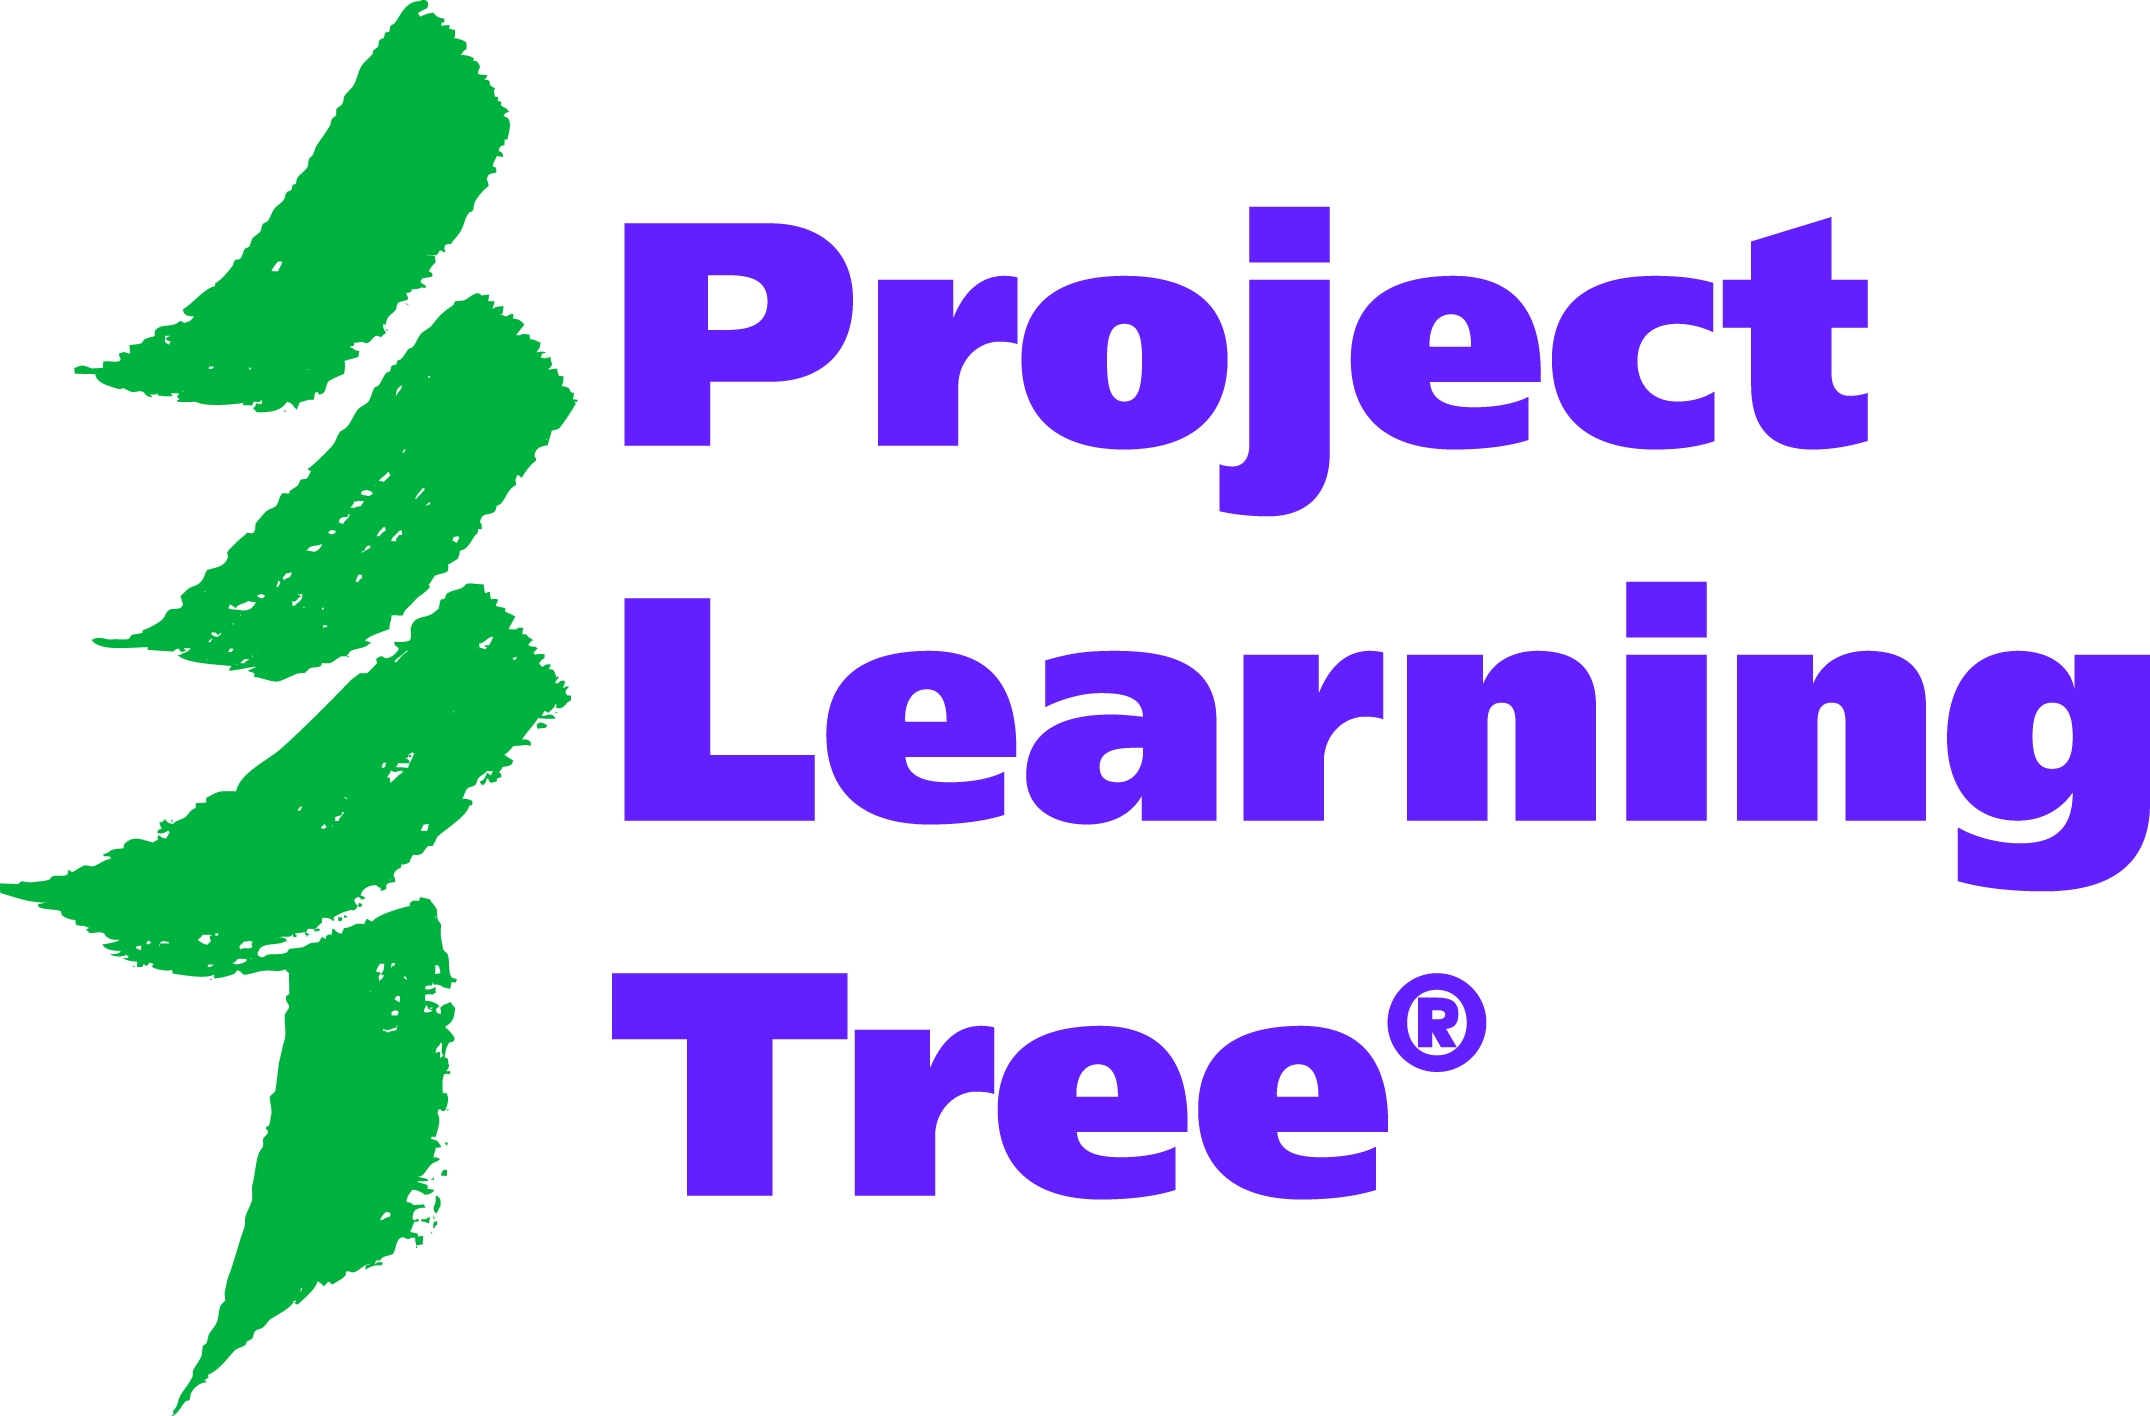 Project Learning Tree® - PLT